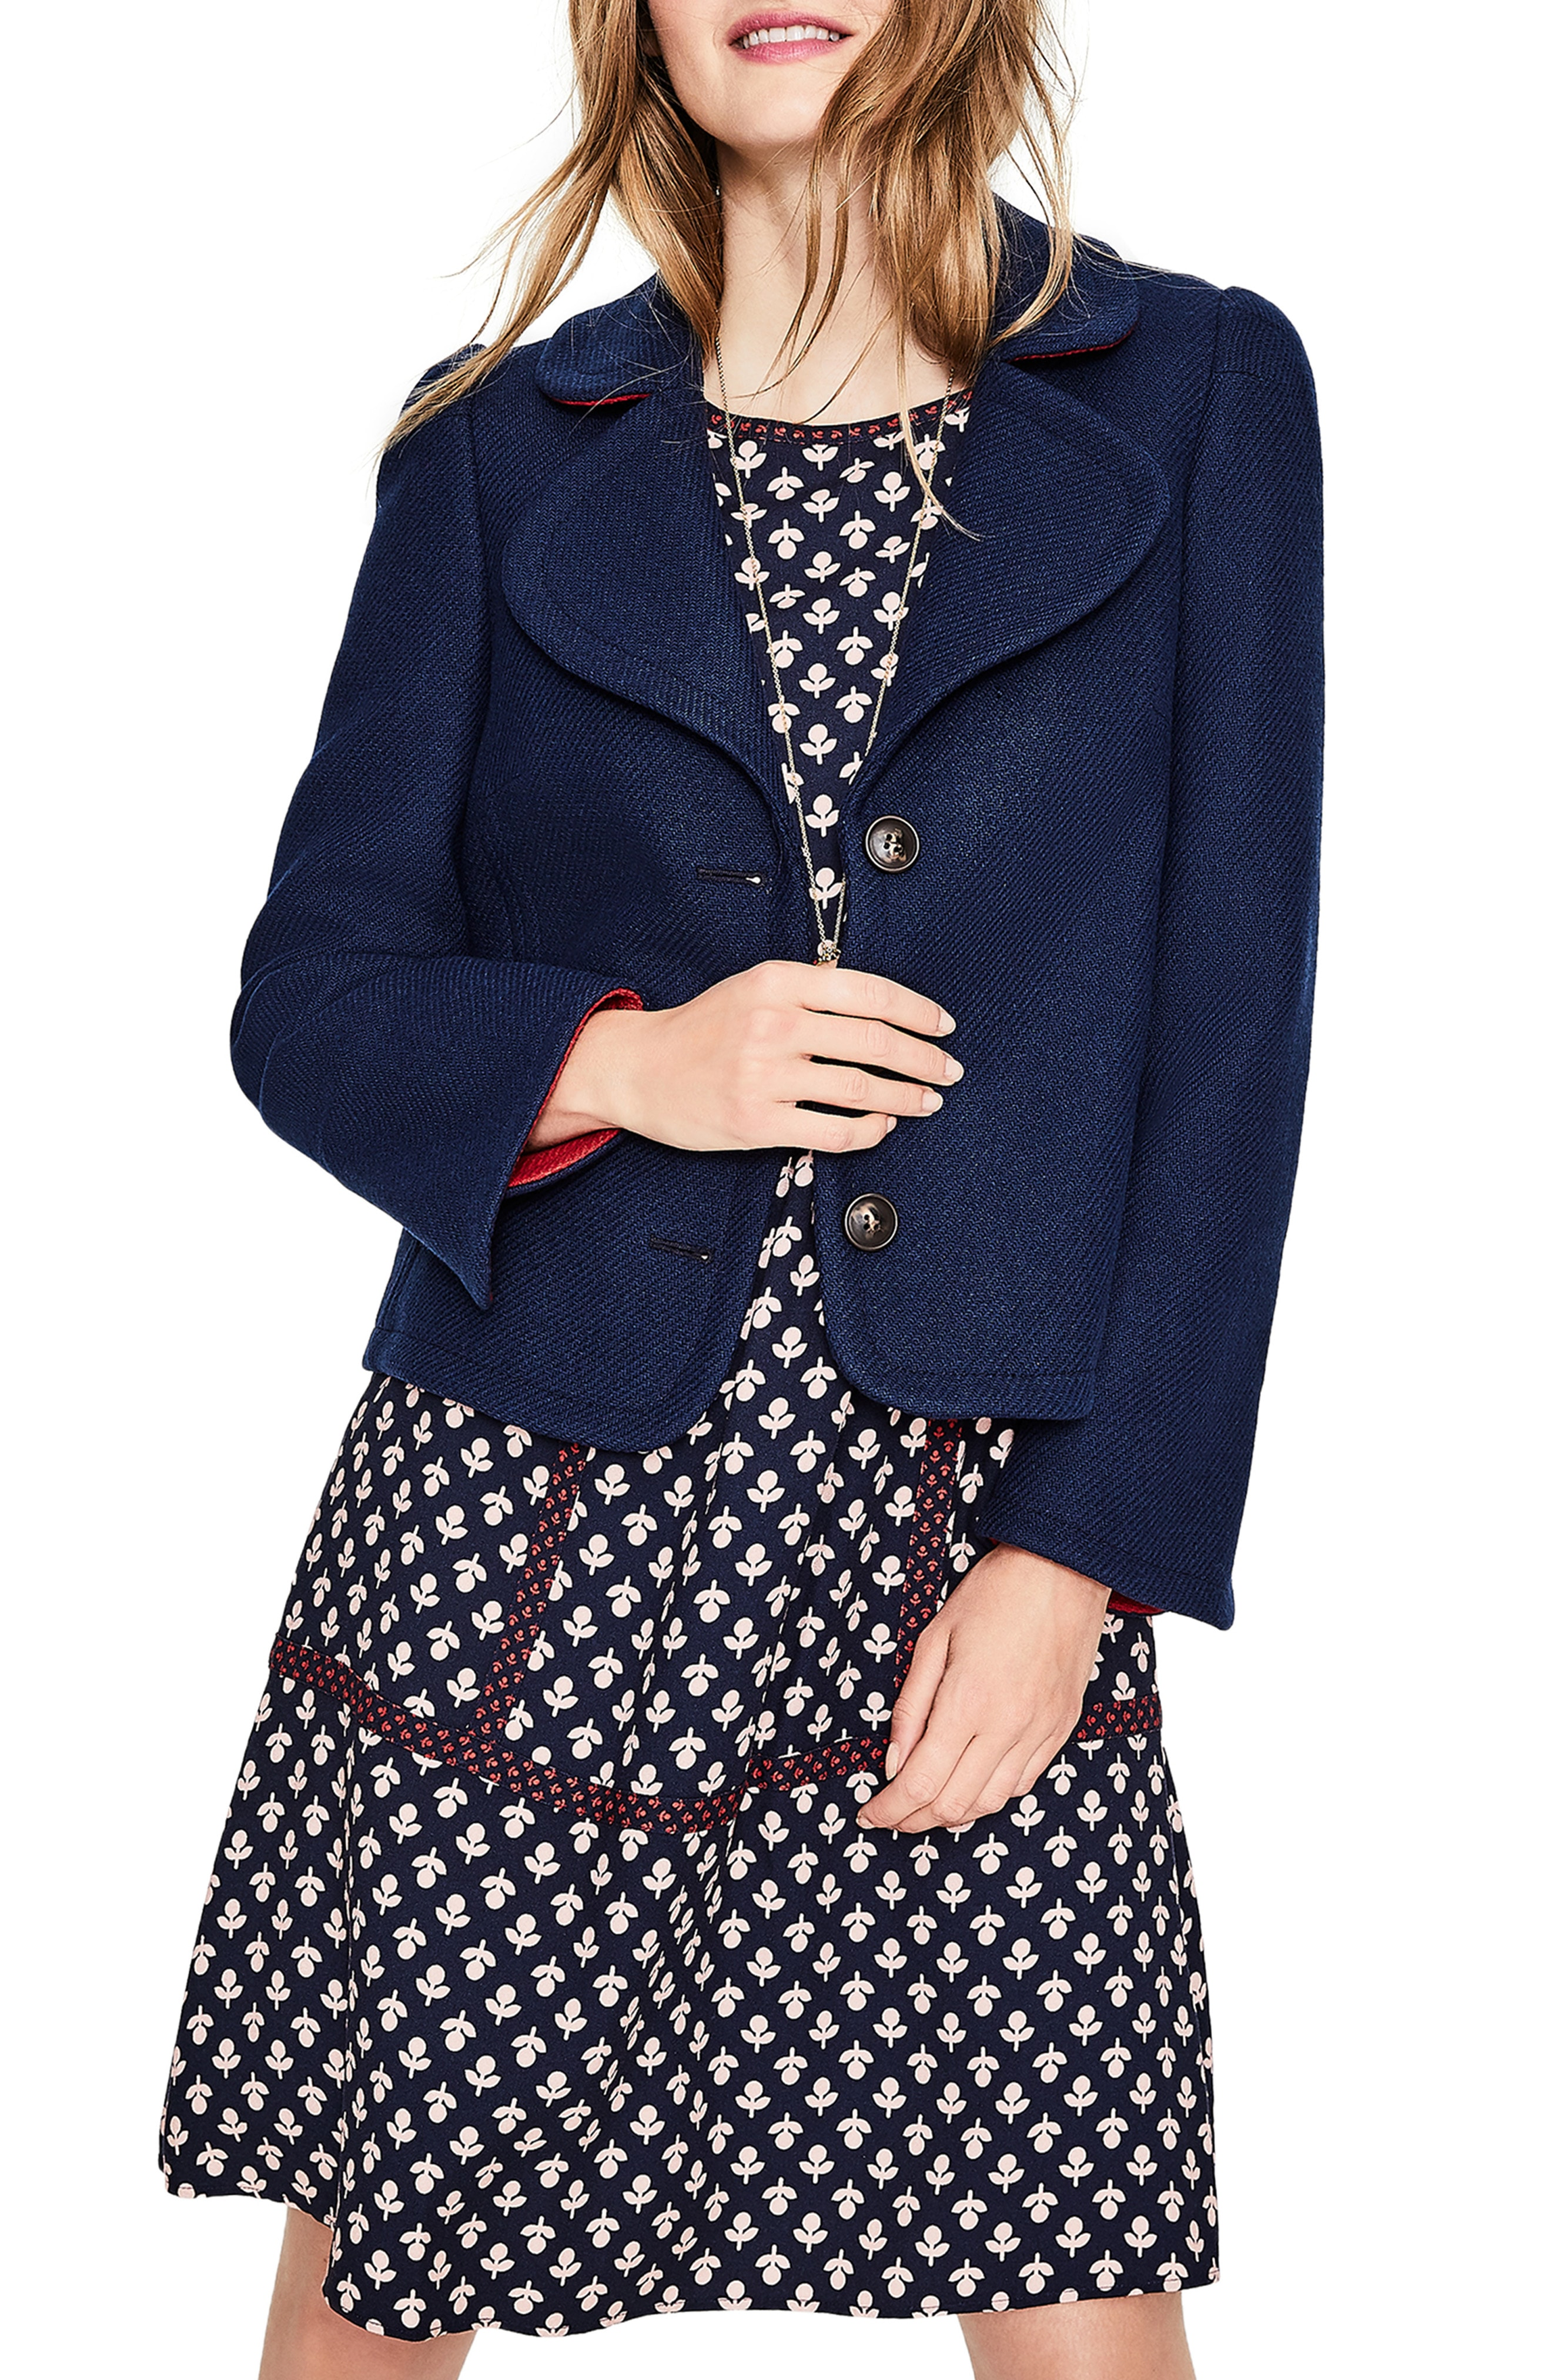 Boden Horsell Jacket